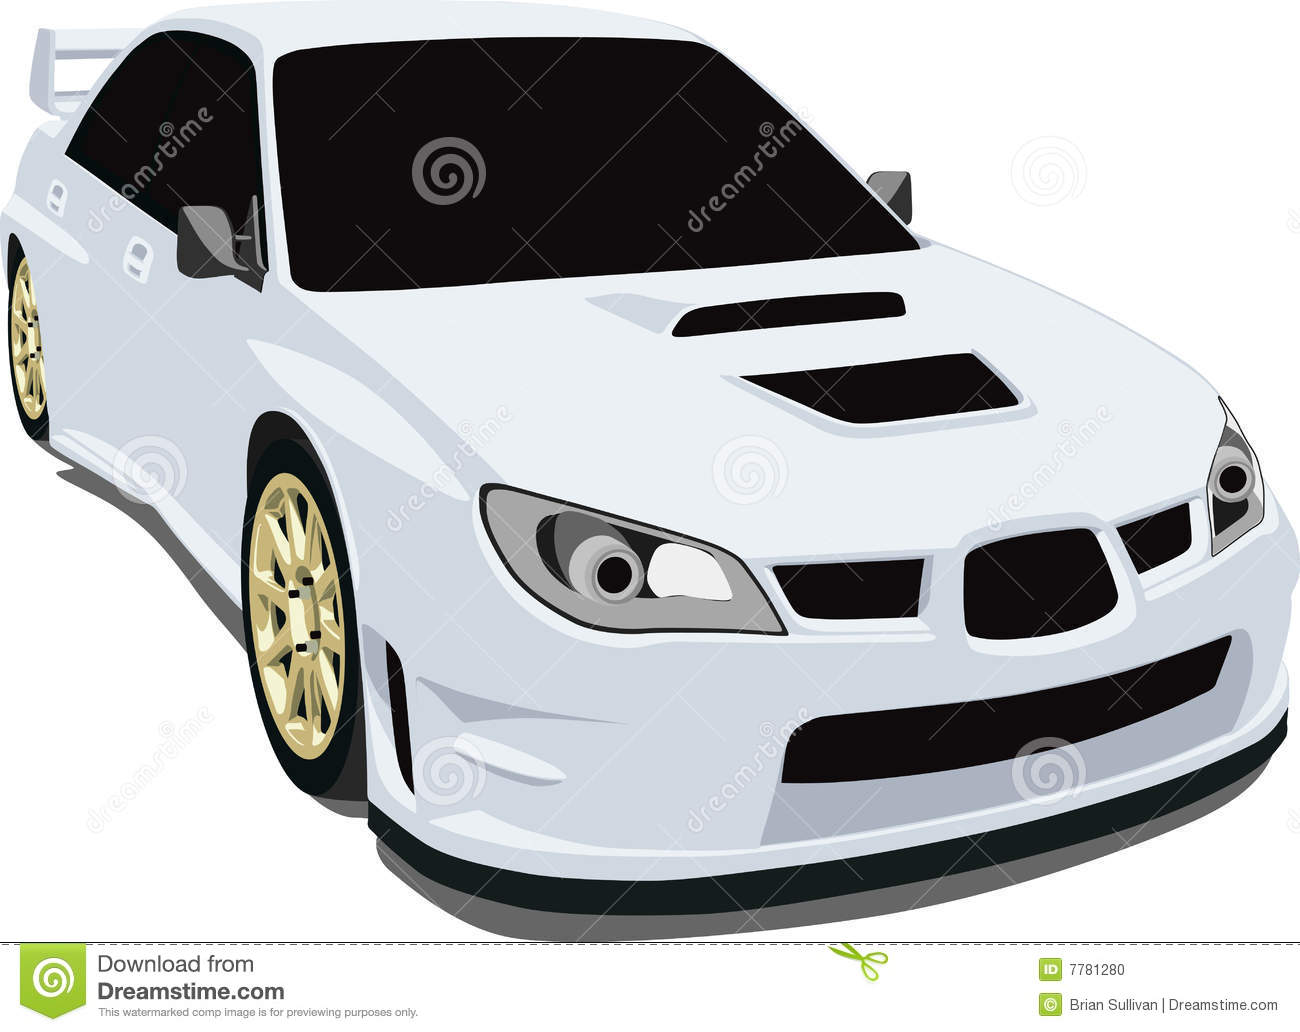 Subru clipart banner stock Subaru clipart » Clipart Station banner stock